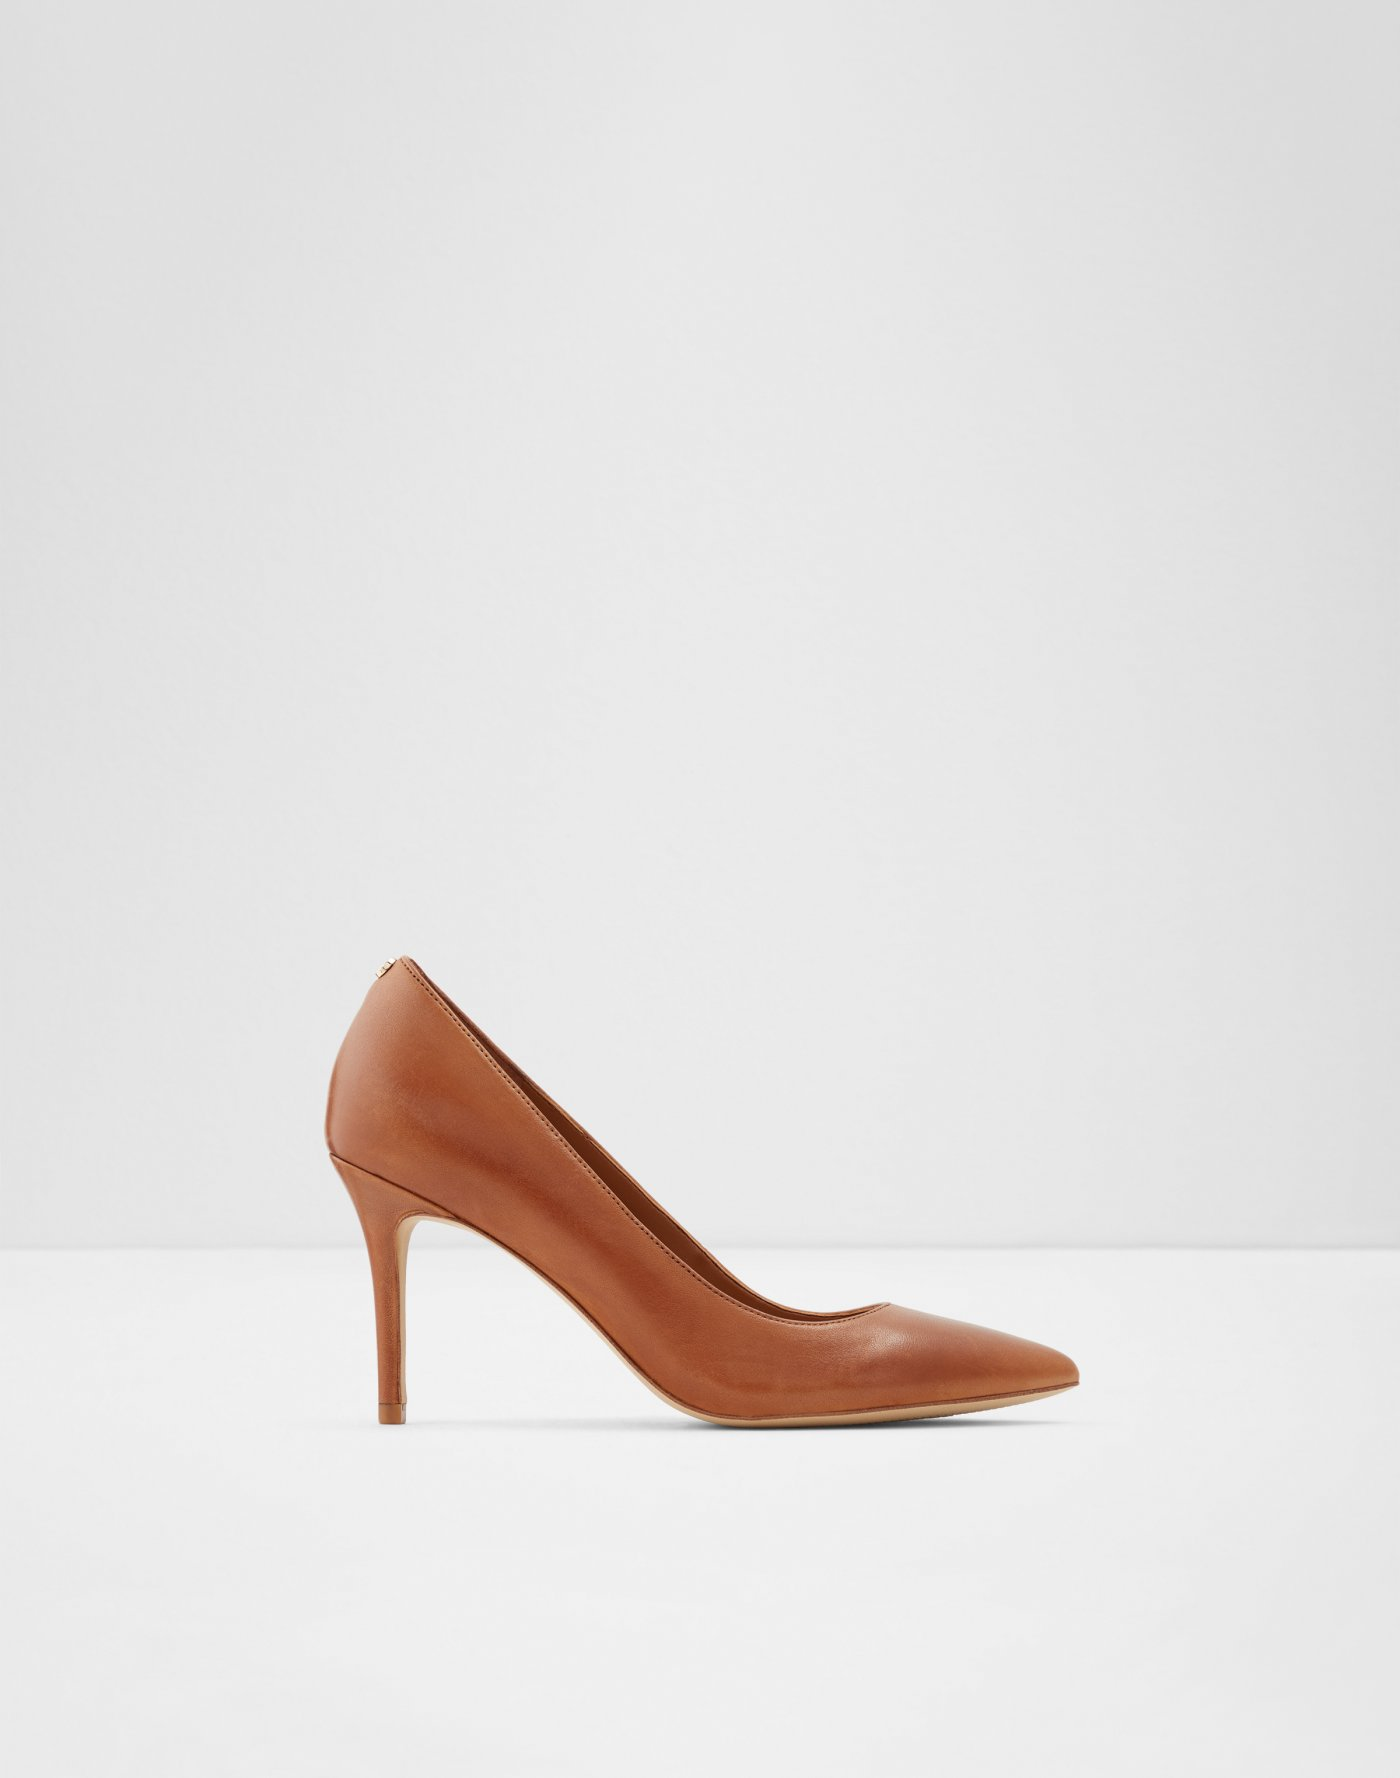 ShoesStore Outlet Outlet ShoesStore Aldo Us Women's Aldo Us Aldo Outlet Women's Women's ShoesStore mnN8ywOv0P